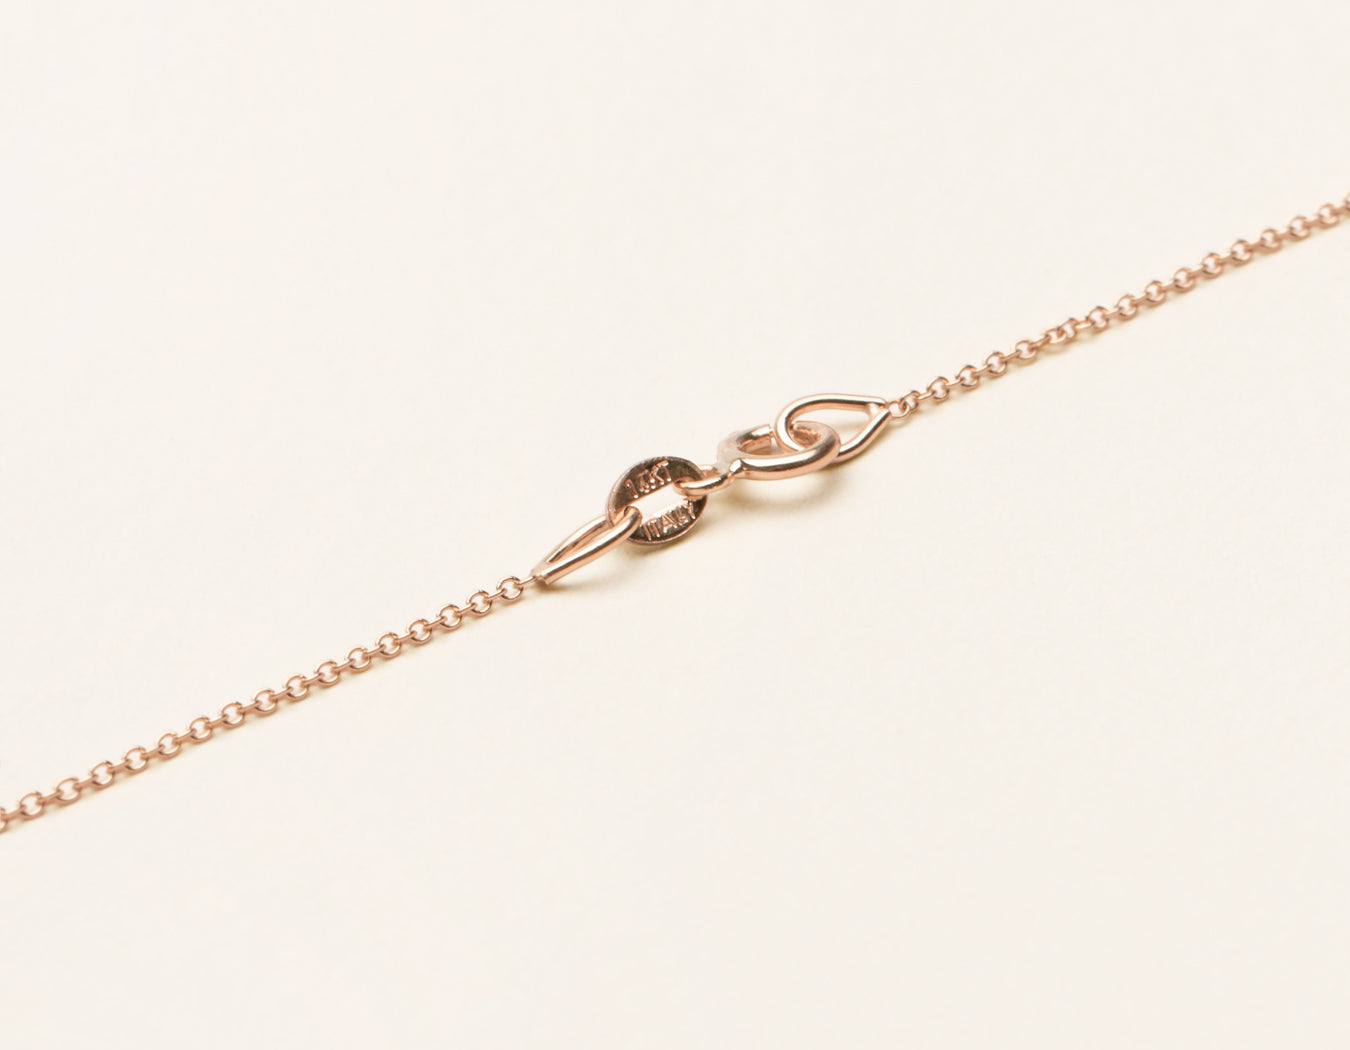 Simple classic 14k solid gold Oval Link Chain necklace with spring ring clasp by Vrai & Oro sustainable jewelry, 14K Rose Gold